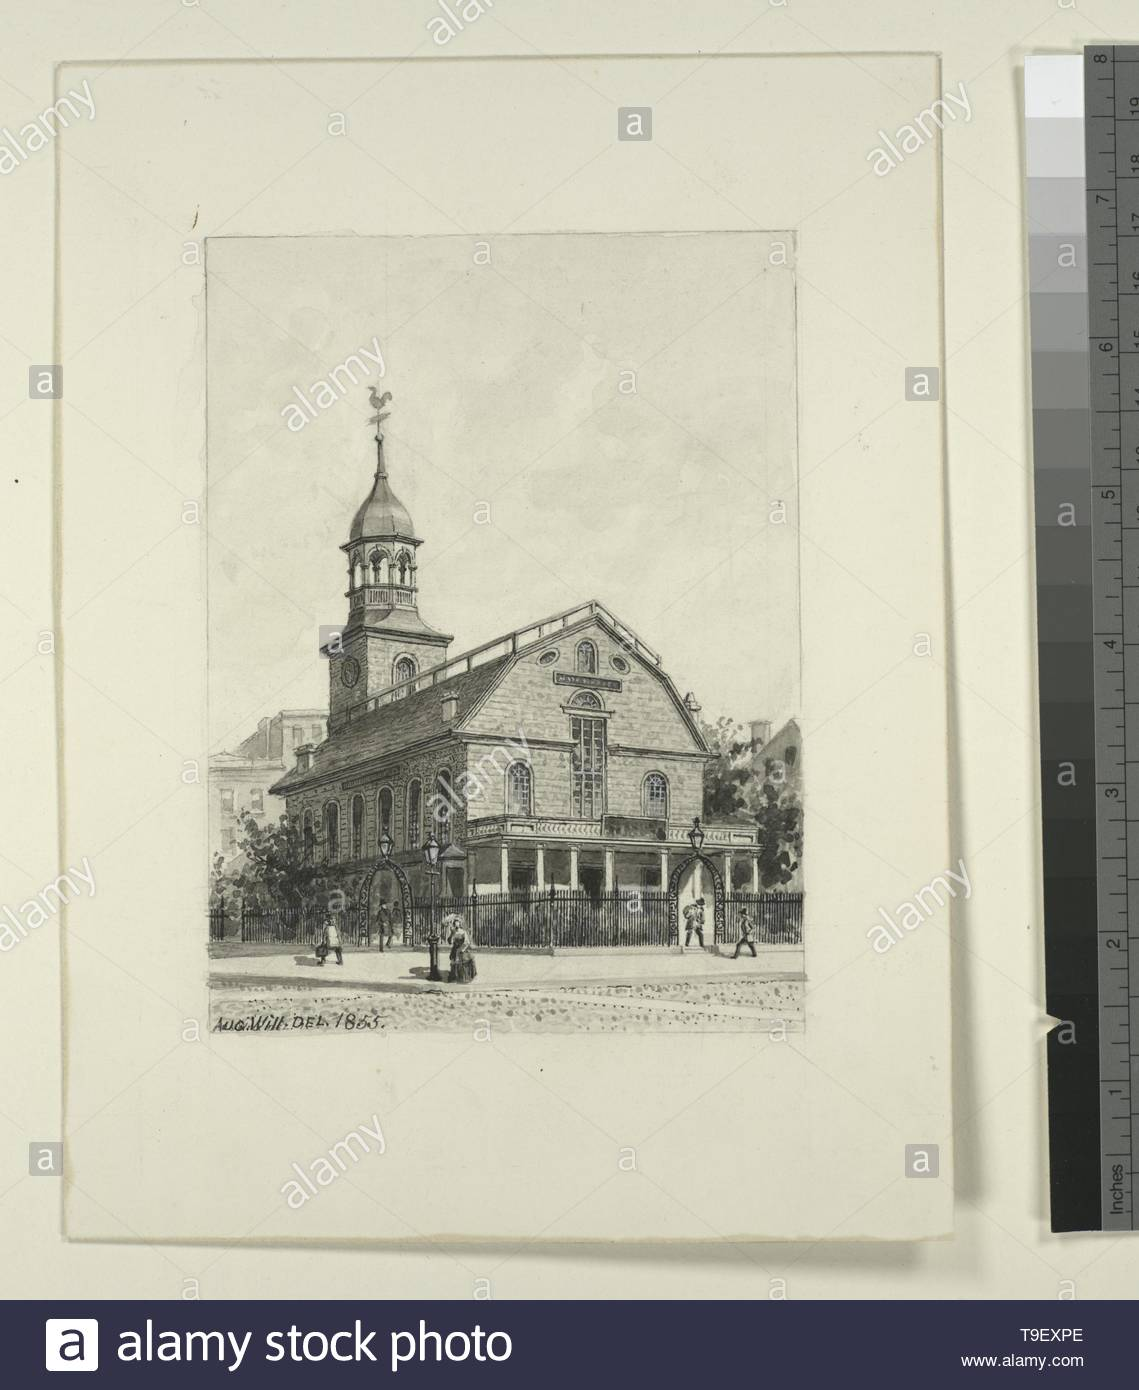 Will,JohnM August(1834-1910)-[The New York Post Office on Nassau Street, formerly the New and later the Middle Dutch Church ] - Stock Image